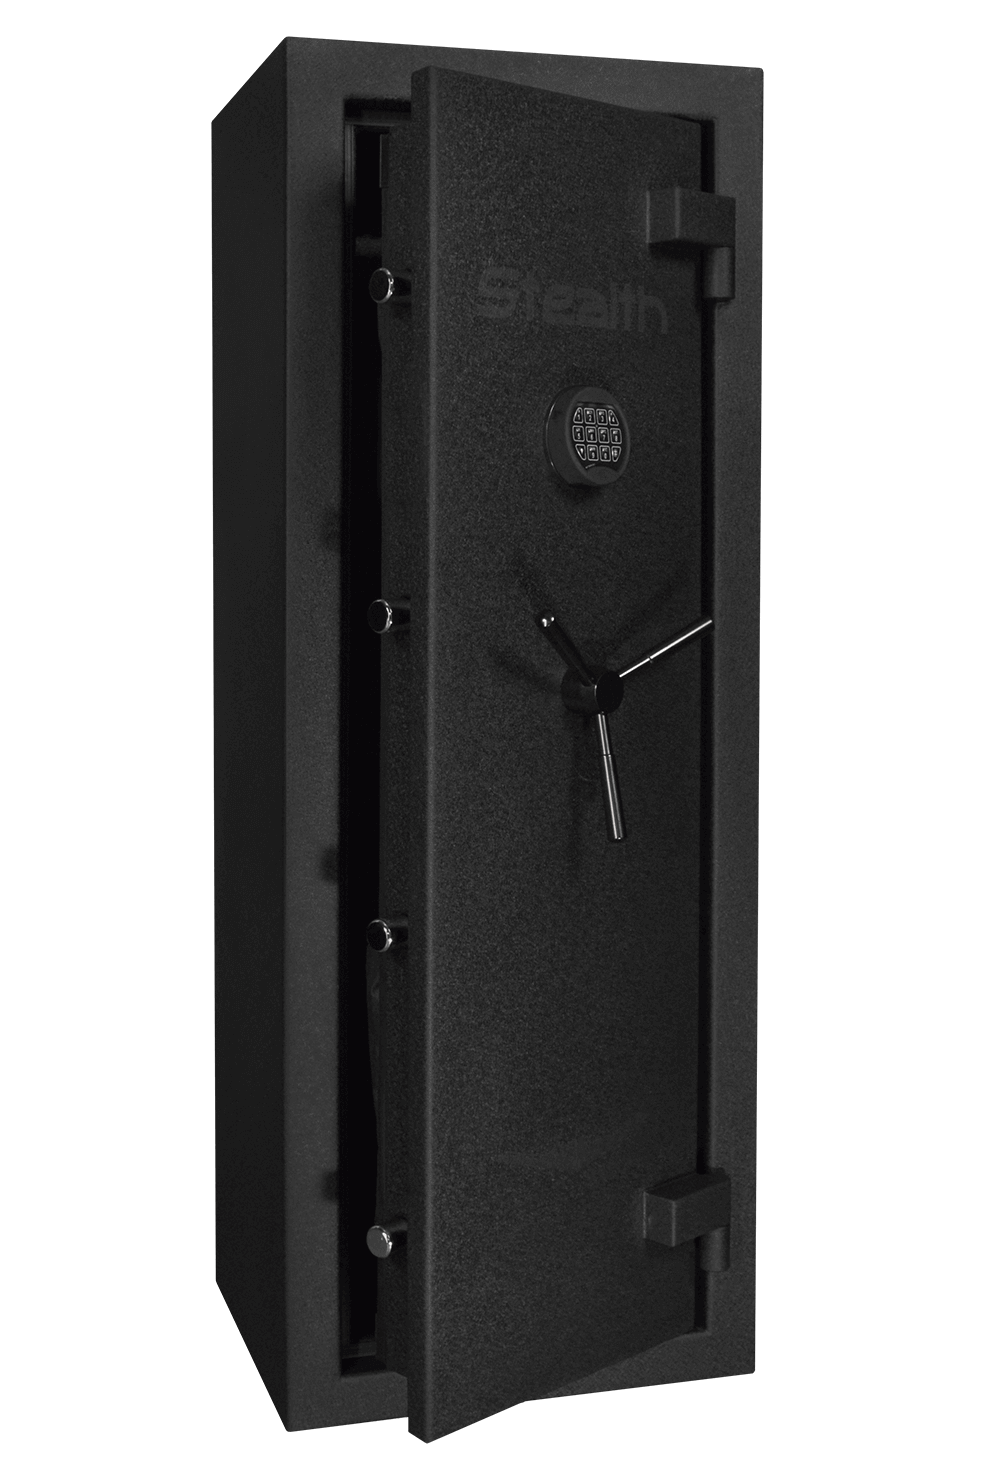 Stealth UL14 Gun Safe RSC Residential Security Container Burglary Rating